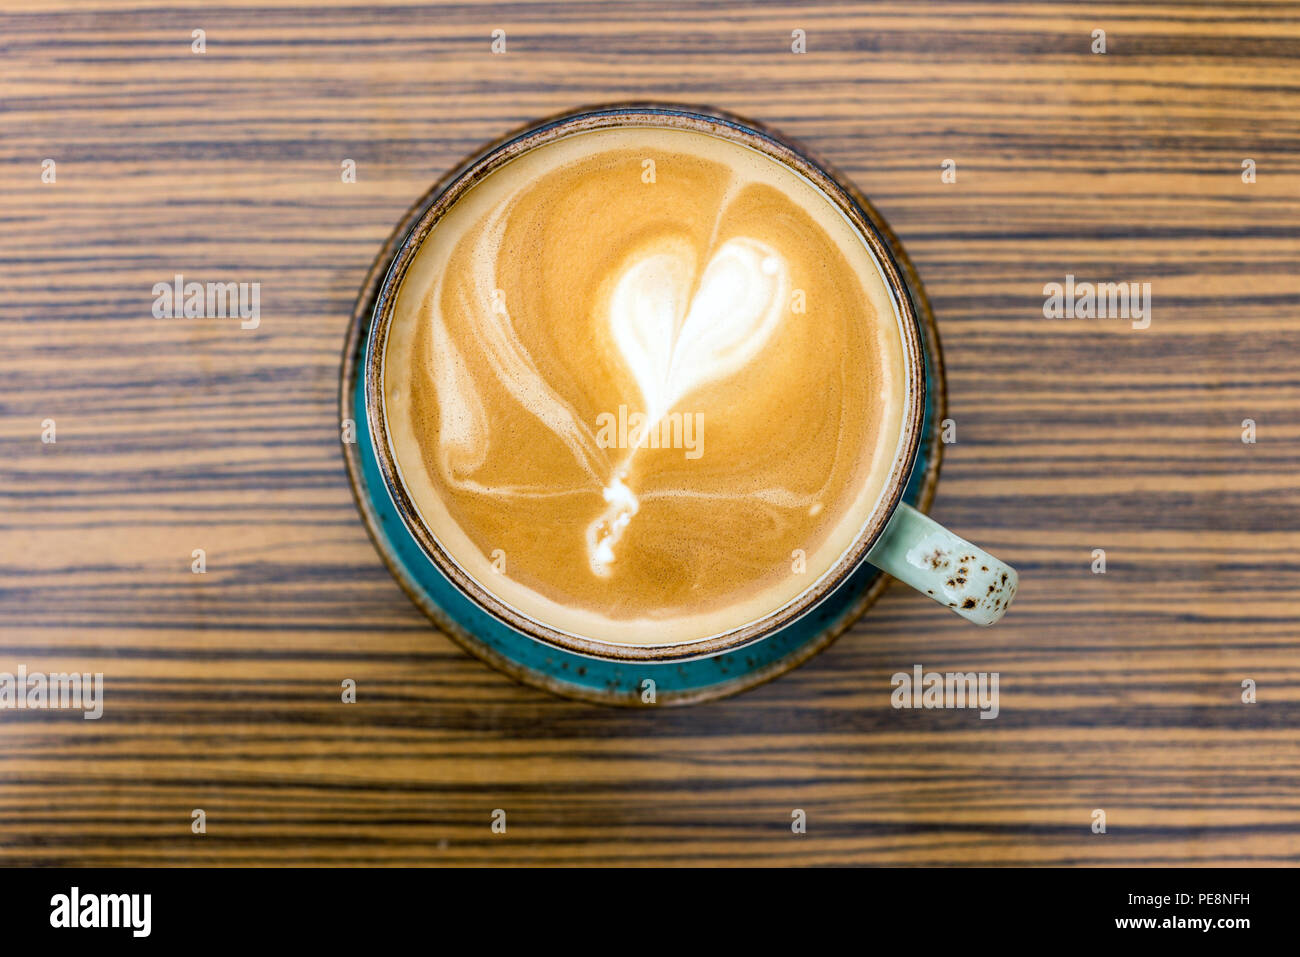 Close-up of coffee latte and cappuccino with heart shape in milk froth in cup as flat lay from above - Stock Image